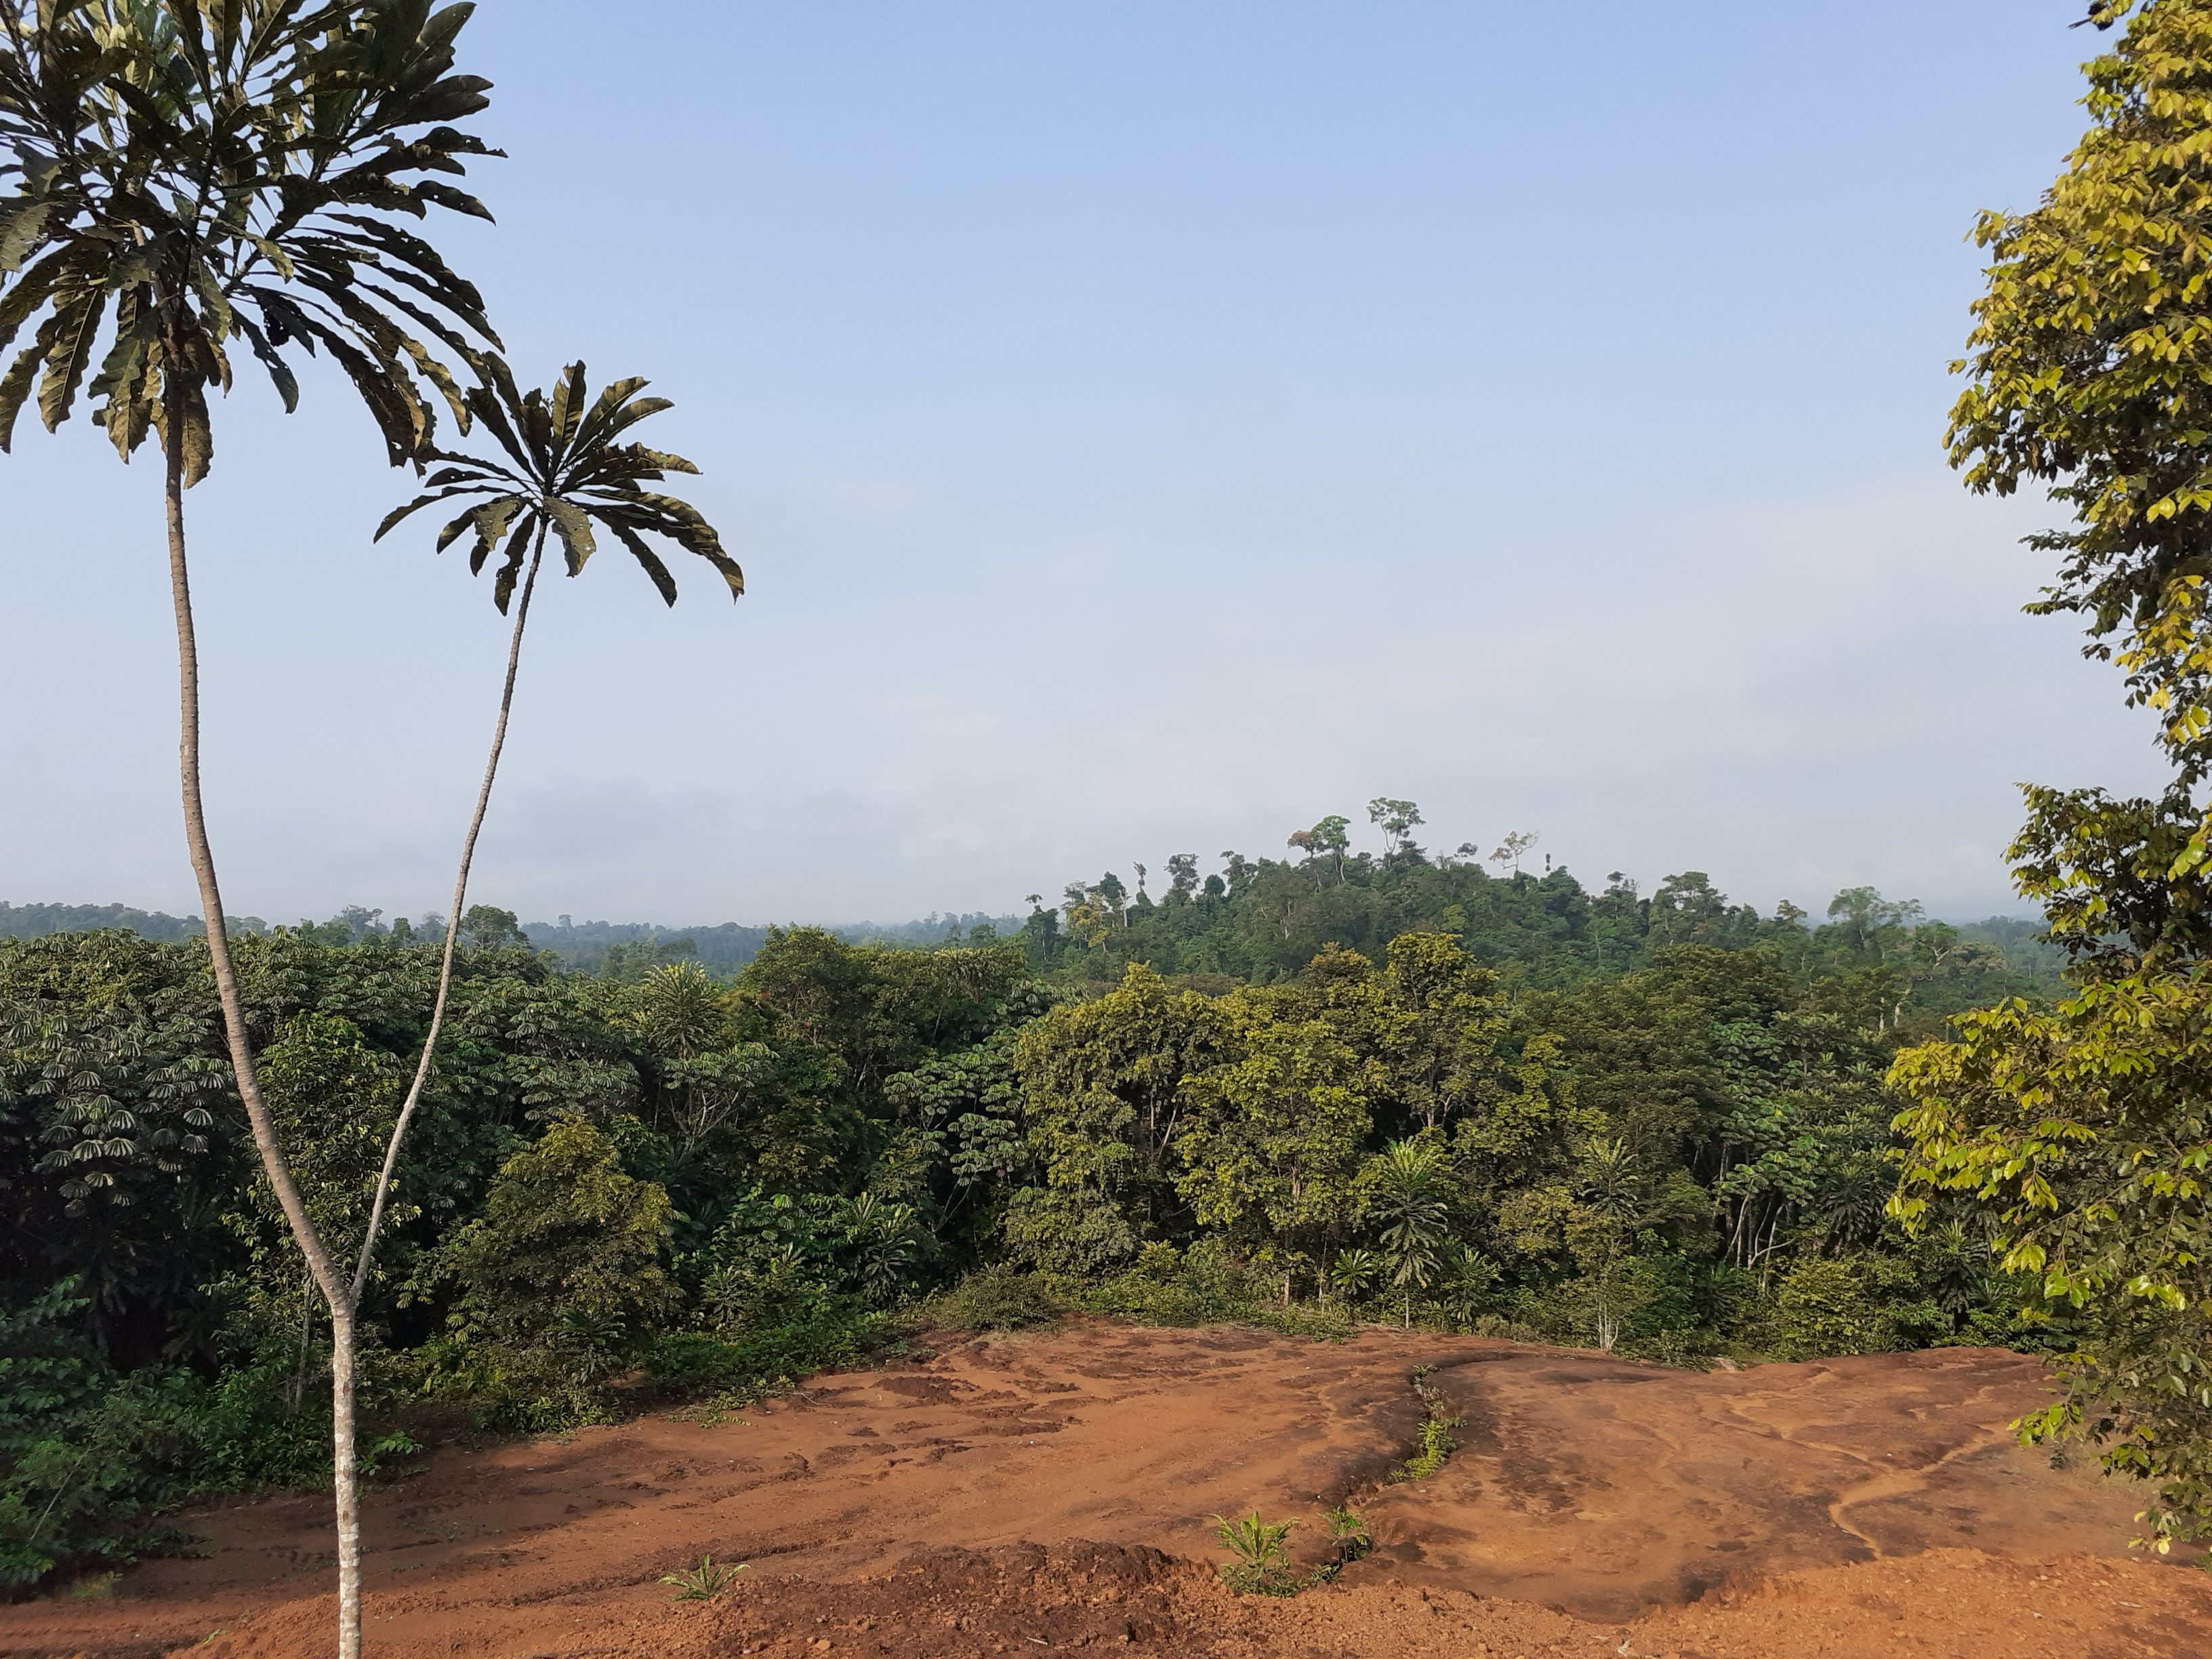 View of the Liberian Jungle